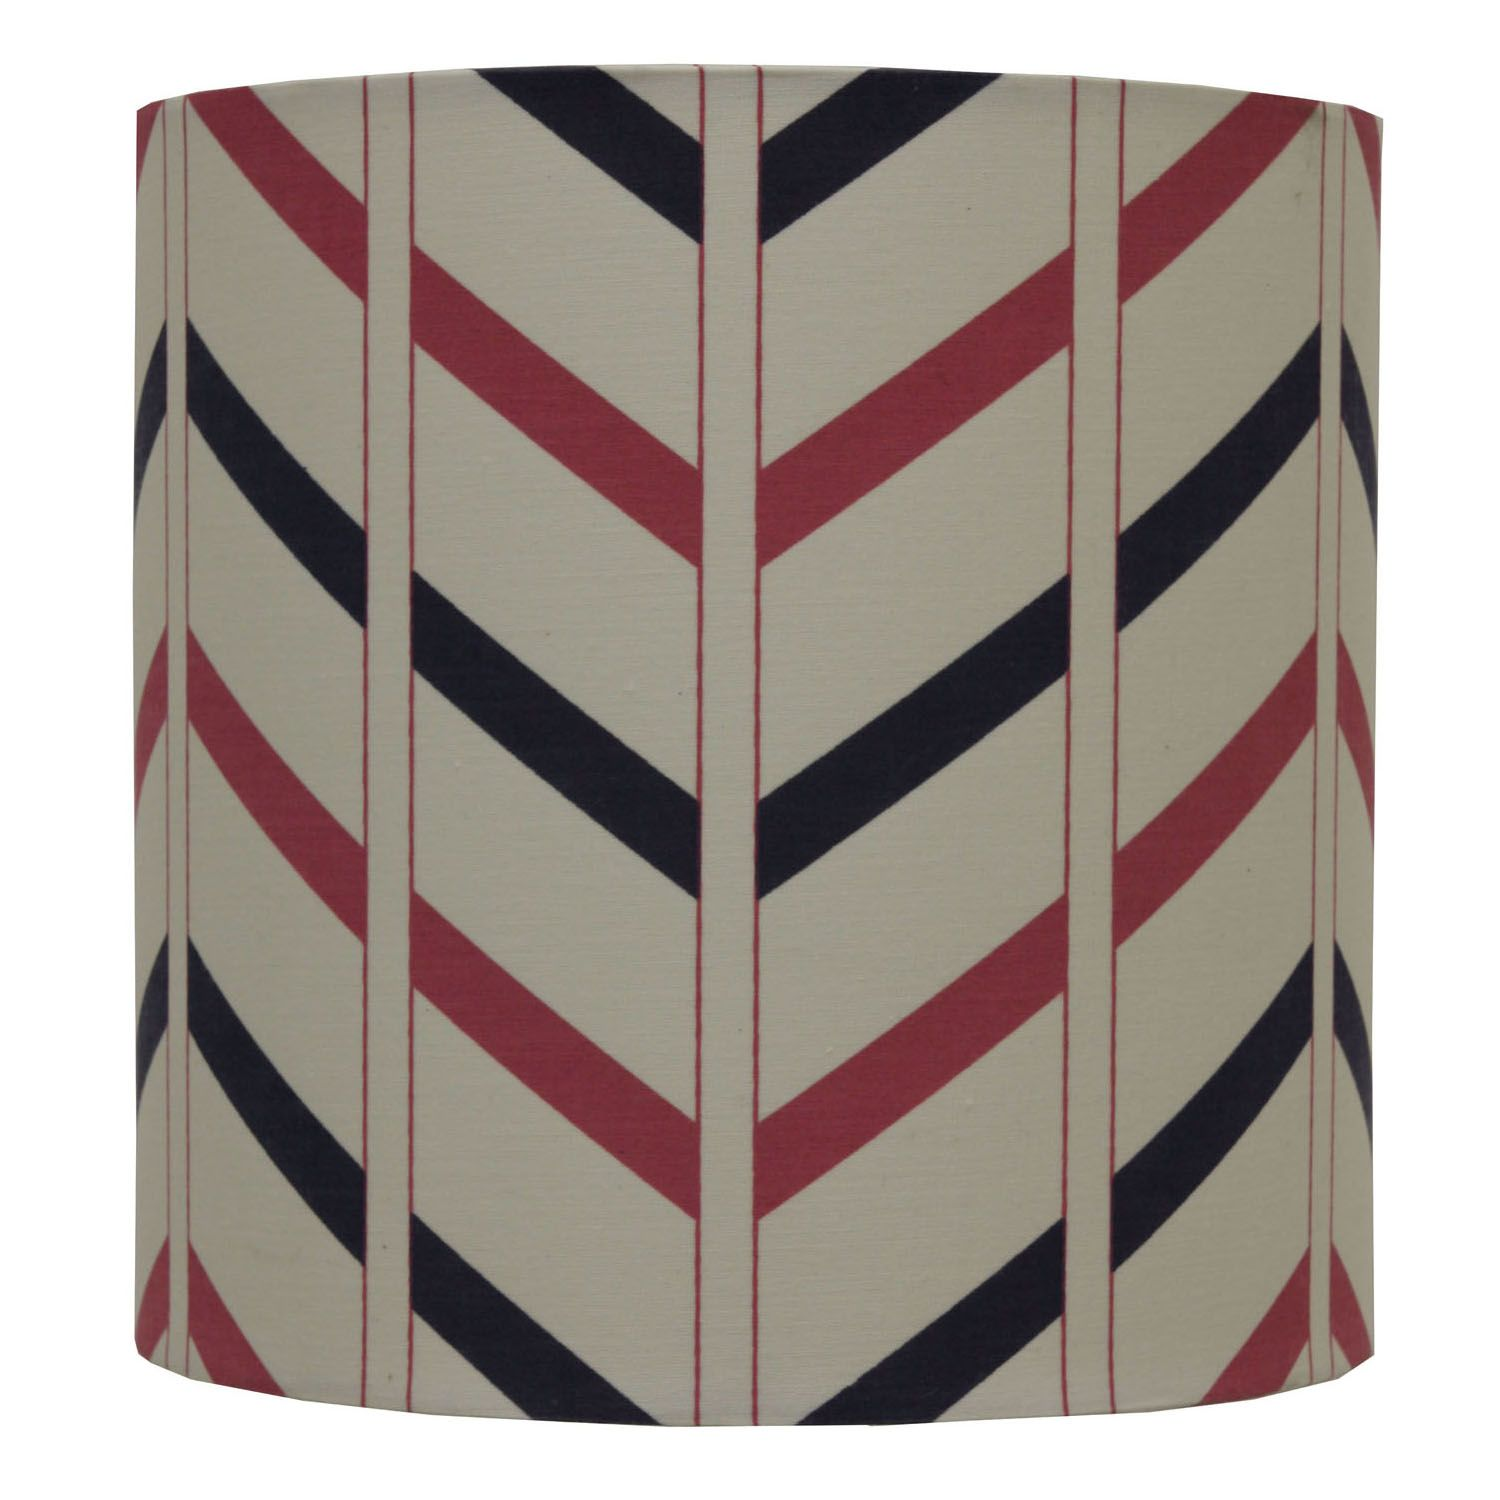 decor therapy chevron drum lamp shade